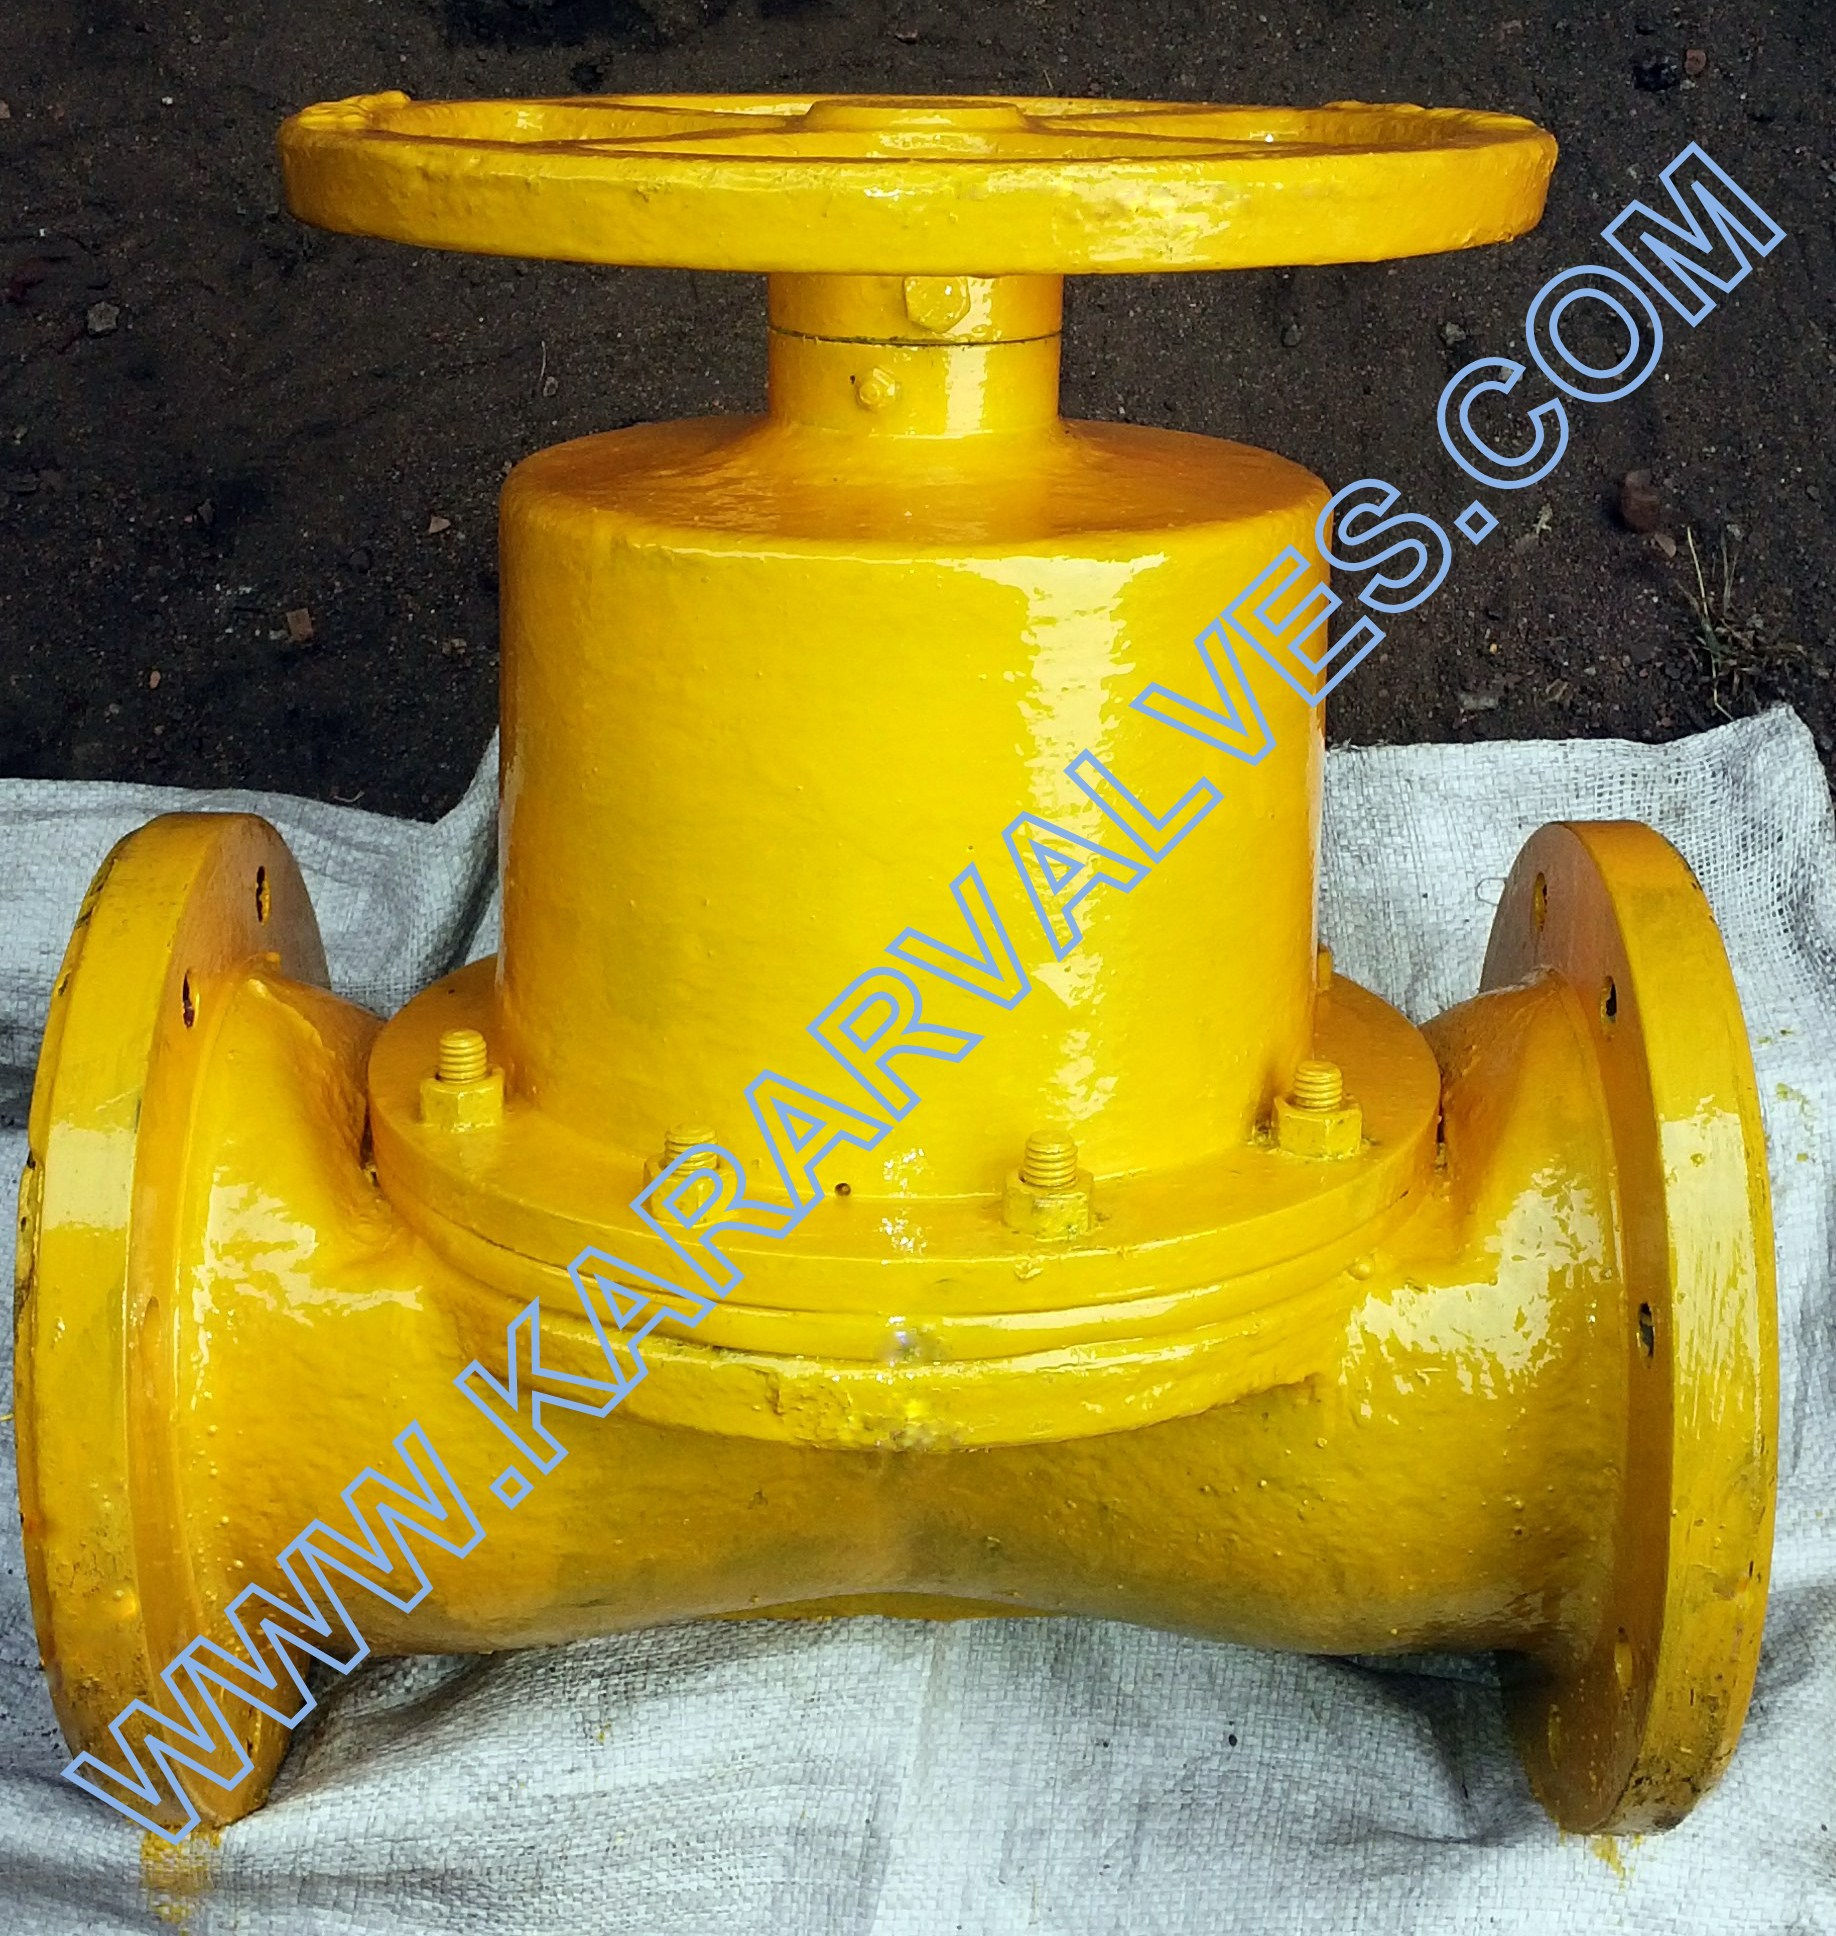 Weir Type Diaphragm valve / Straight Through Diaphragm Valve